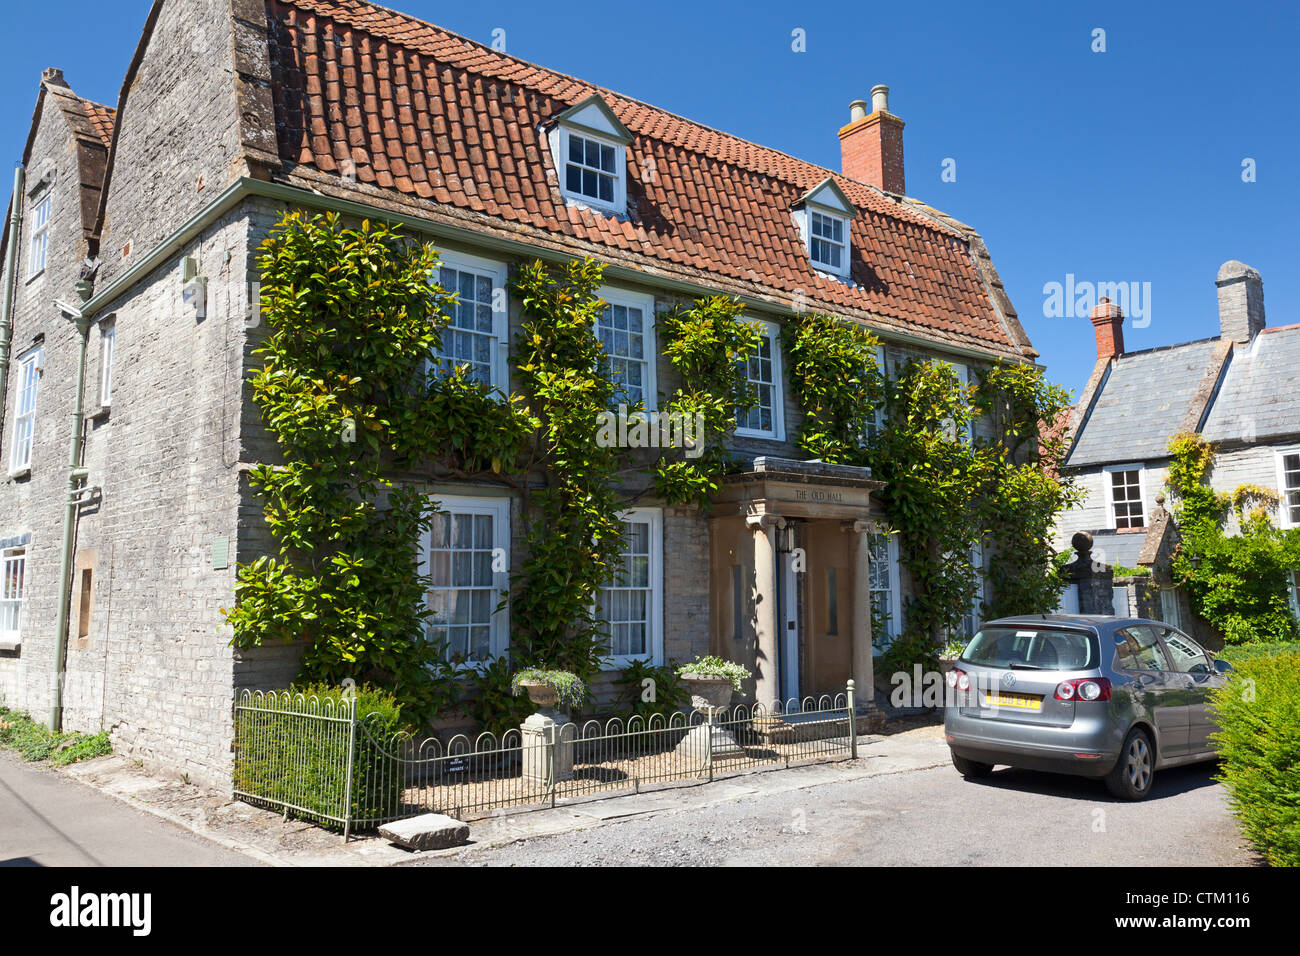 The Old Hall, Somerton, Somerset - Stock Image